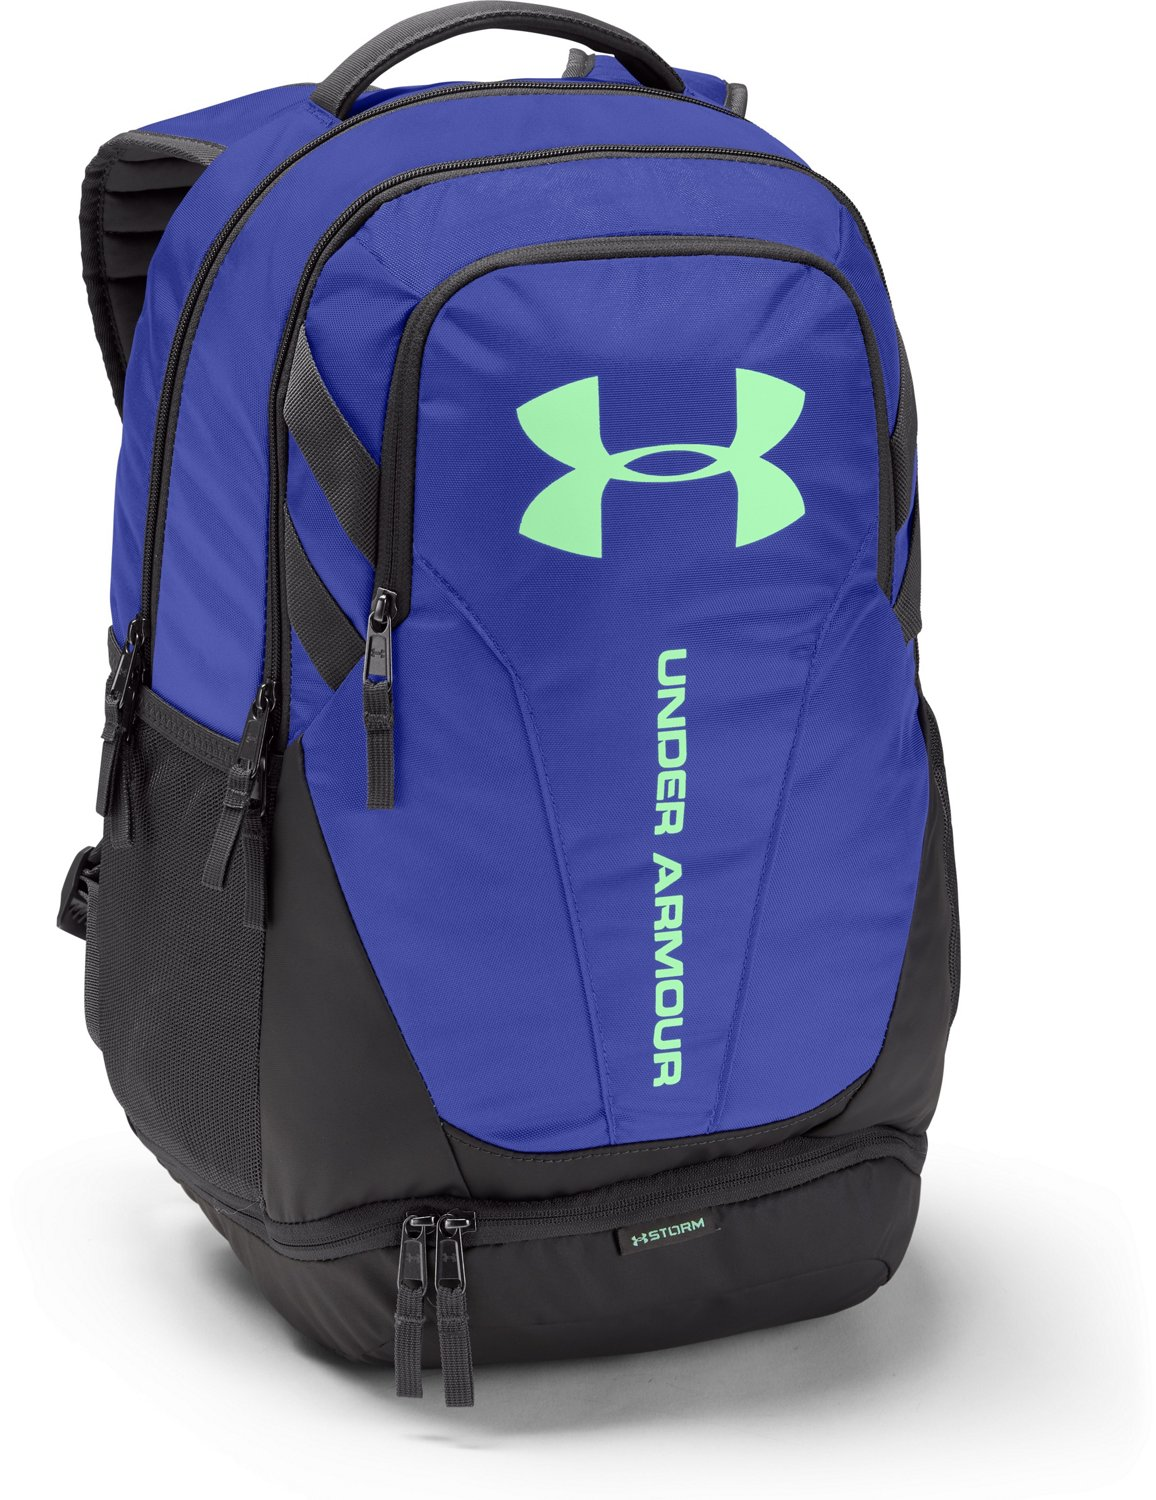 9d557e256bb0 Display product reviews for Under Armour Hustle II Backpack